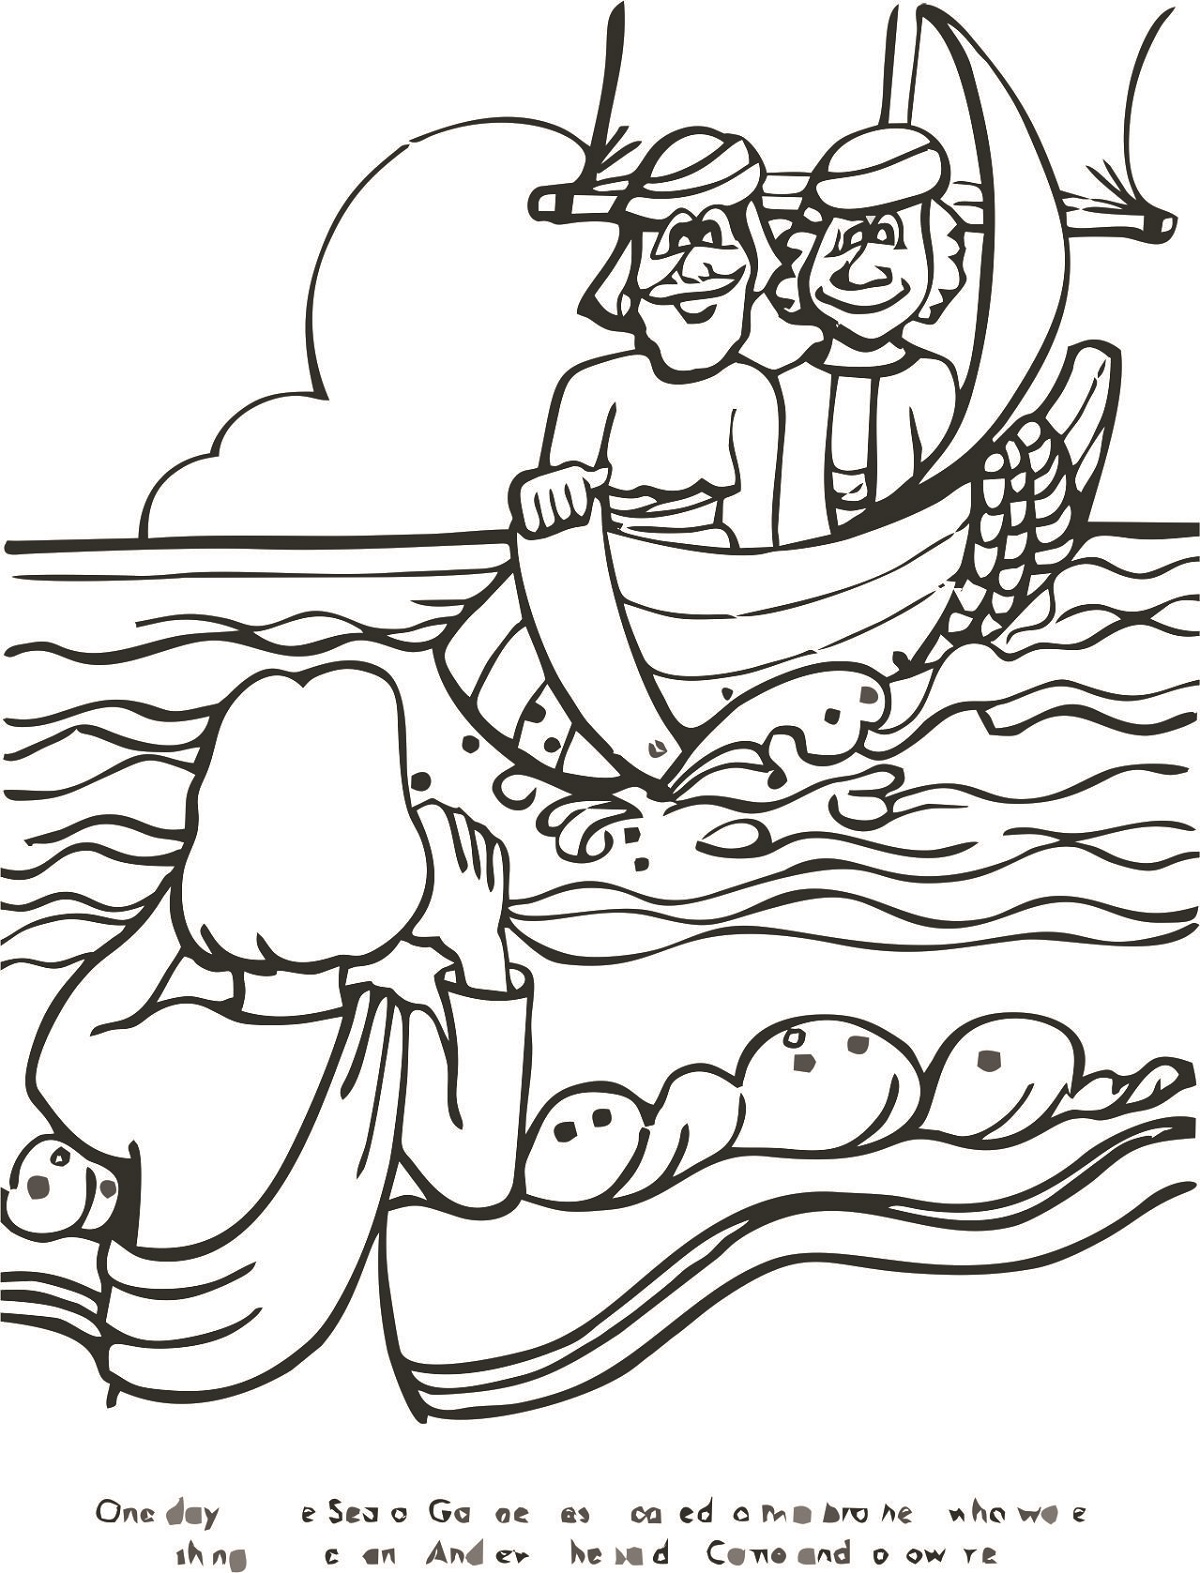 fishers of men coloring page printable